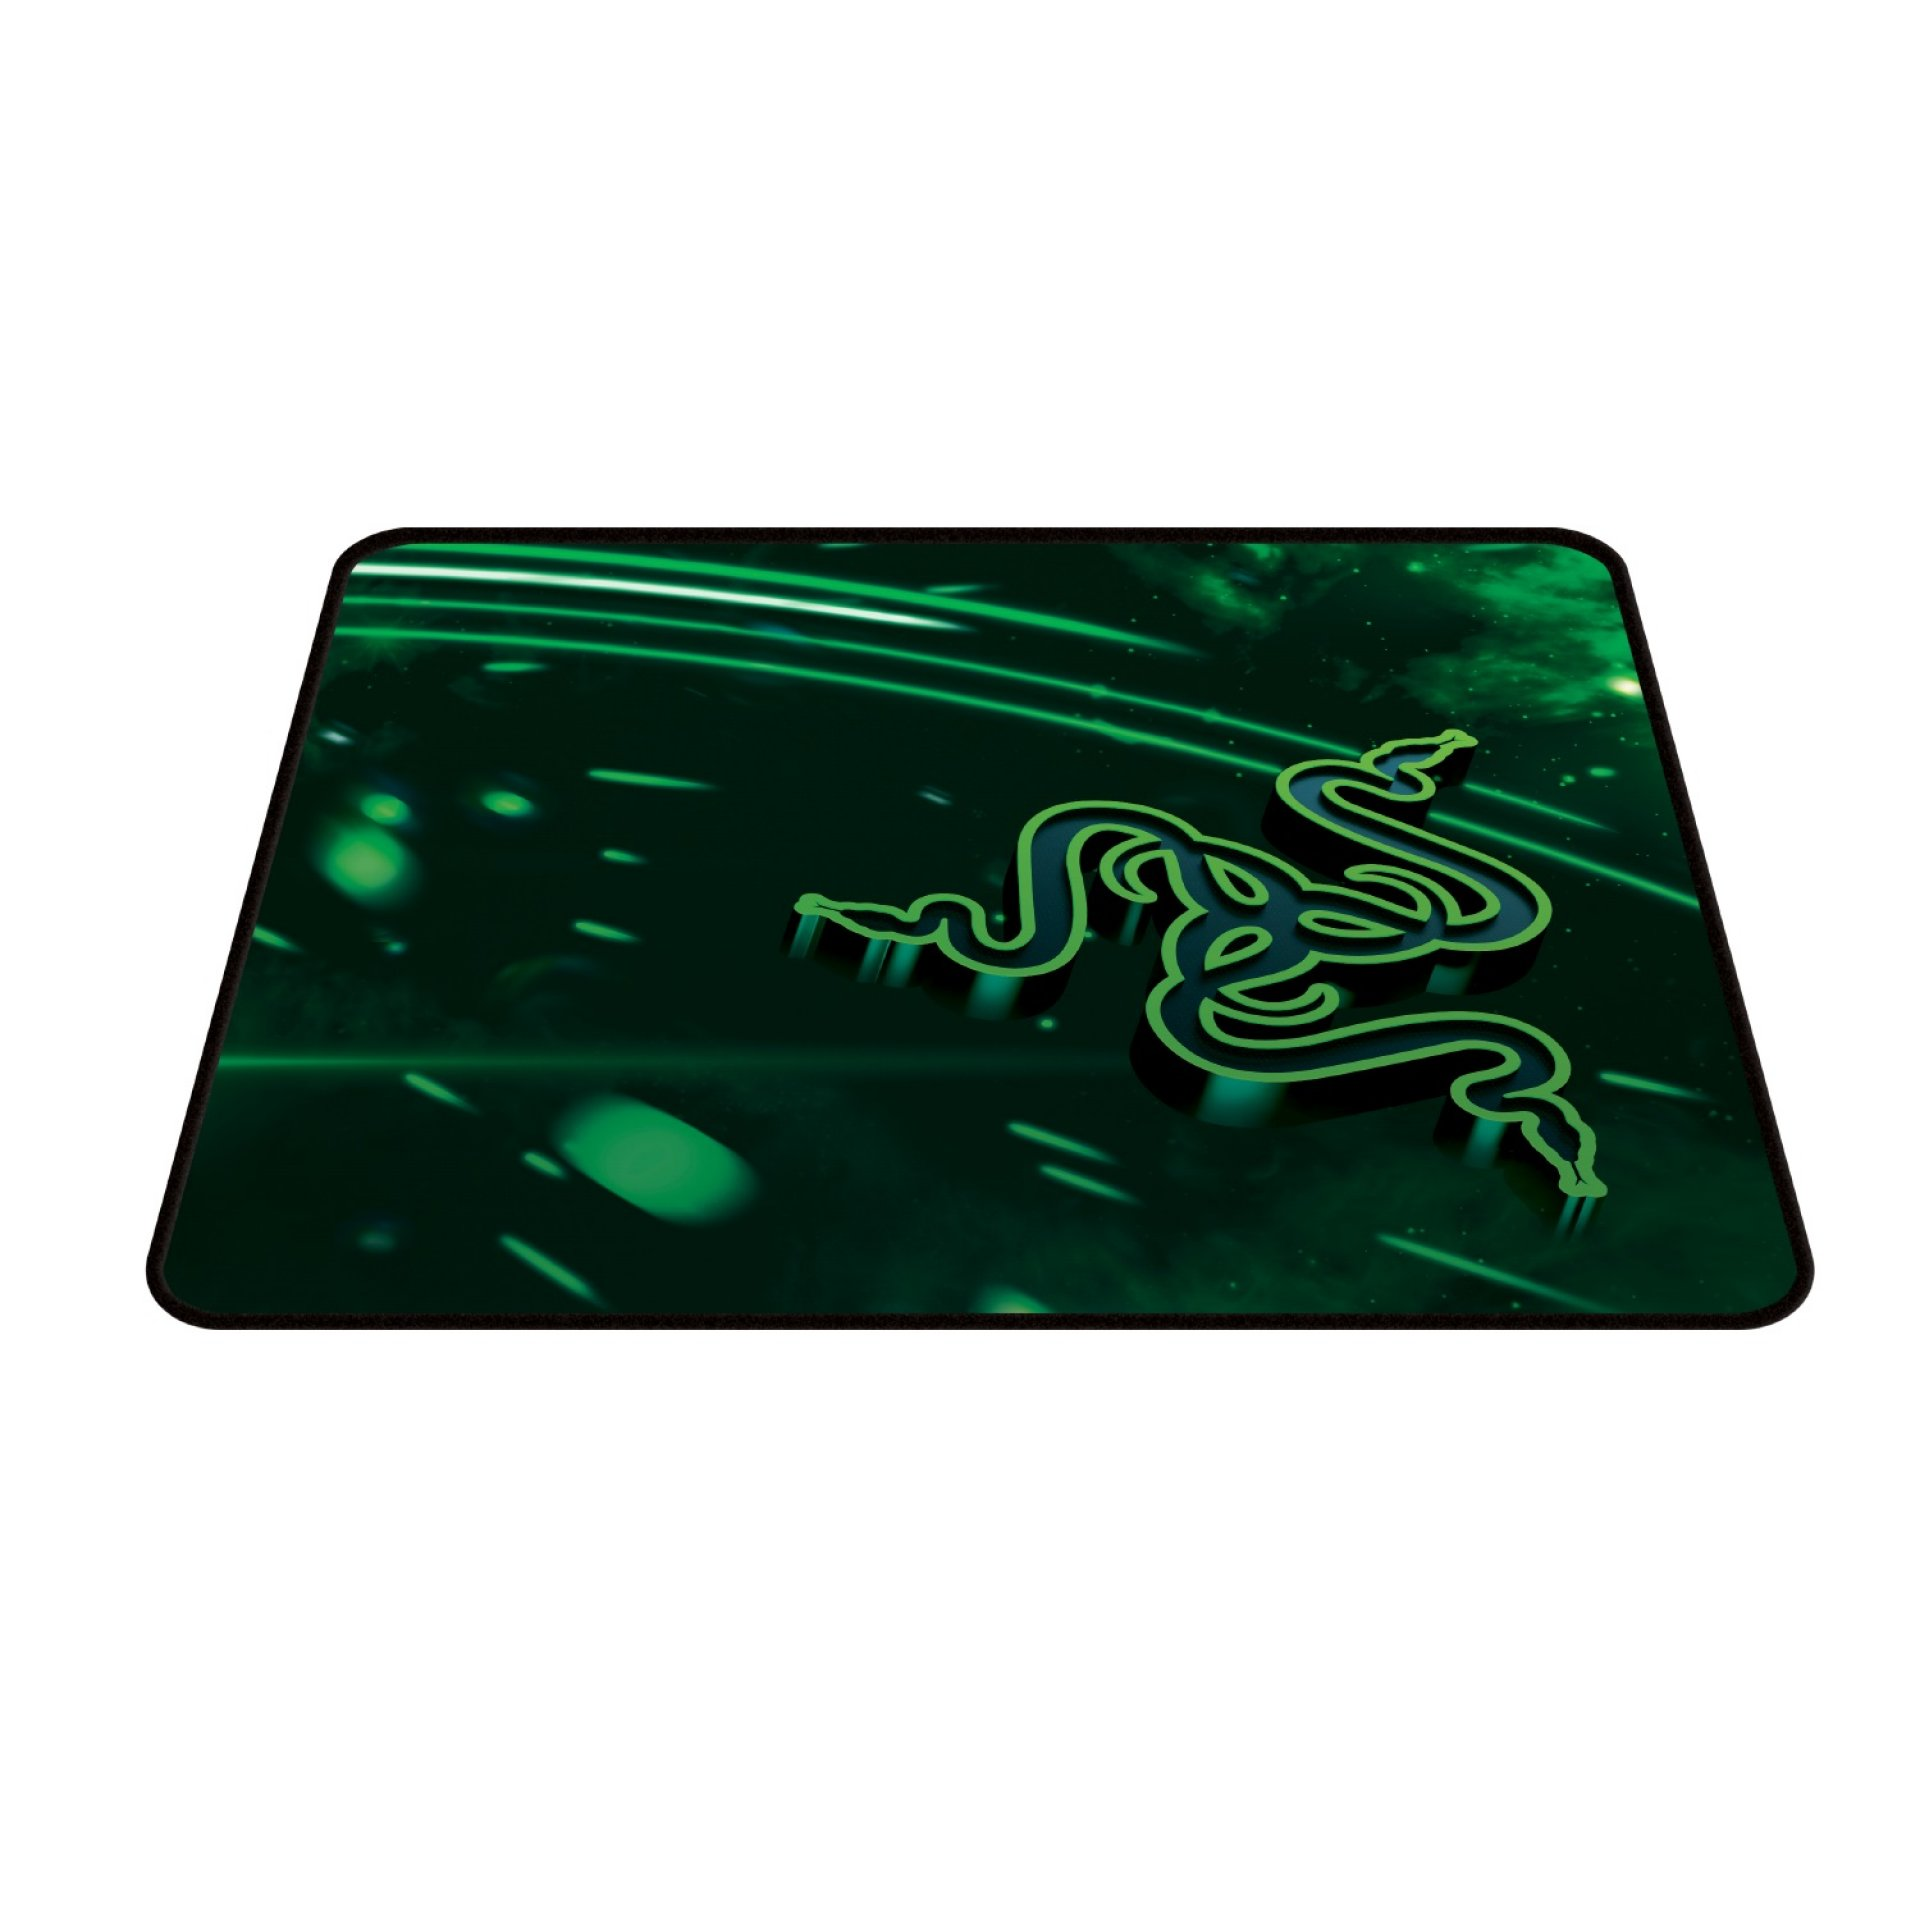 RAZER SOFT GAMING MOUSE PAD - GOLIATHUS SPEED COSMIC EDITION (SMALL) (RZ02-01910100-R3M1)